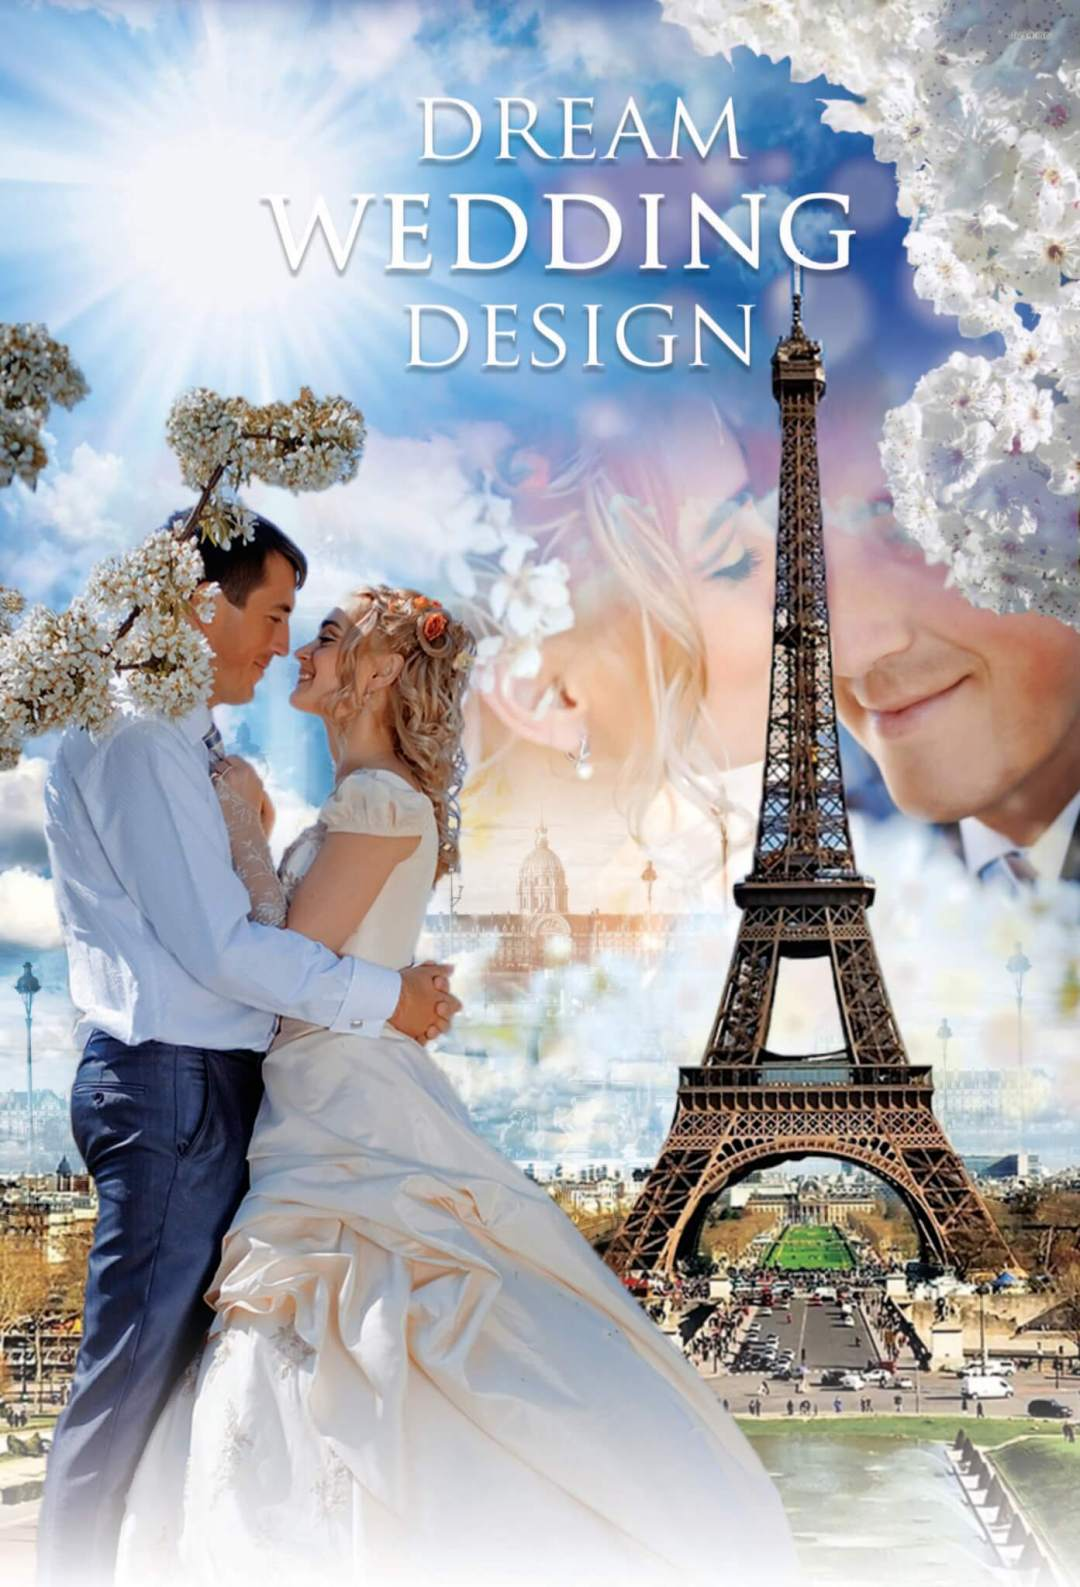 Dream Wedding Not Final Artwork DREAM WEDDING DESIGN